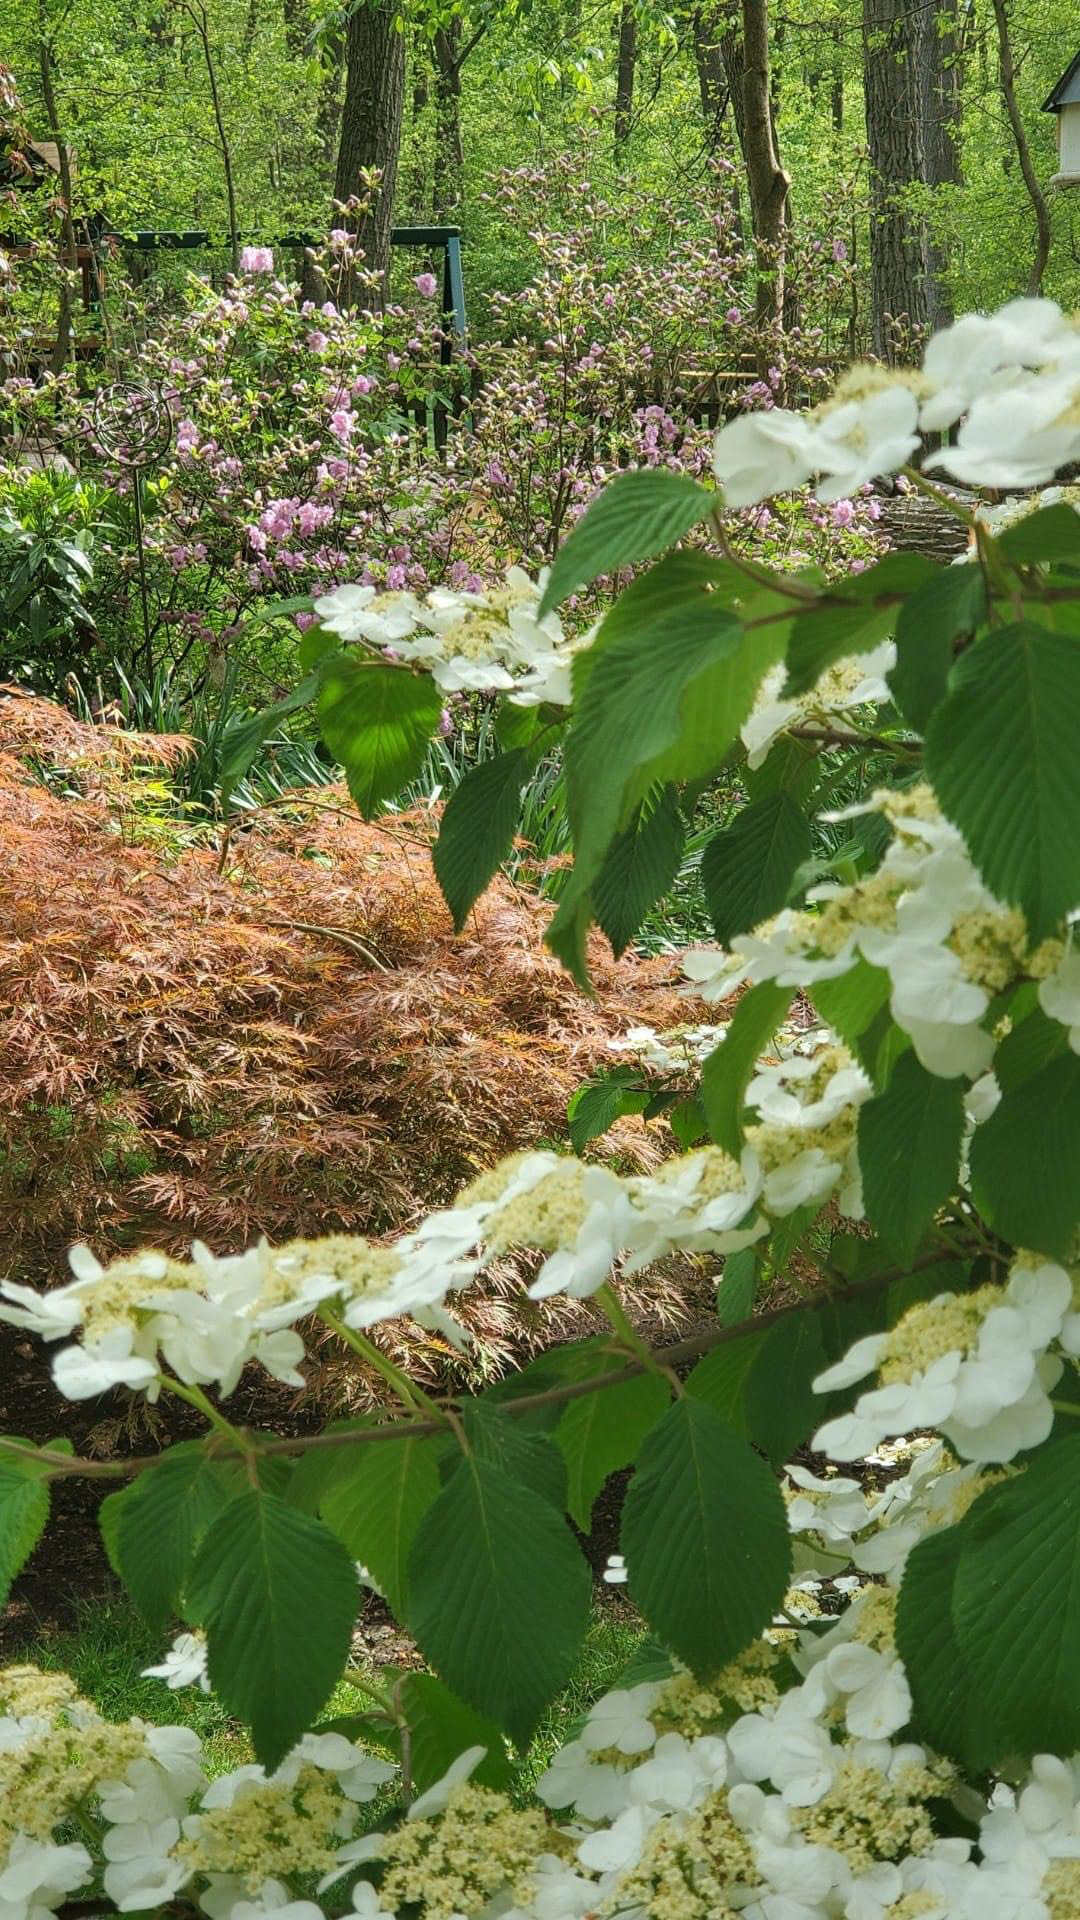 shrub with white flowers in the foreground with other shrubs behind